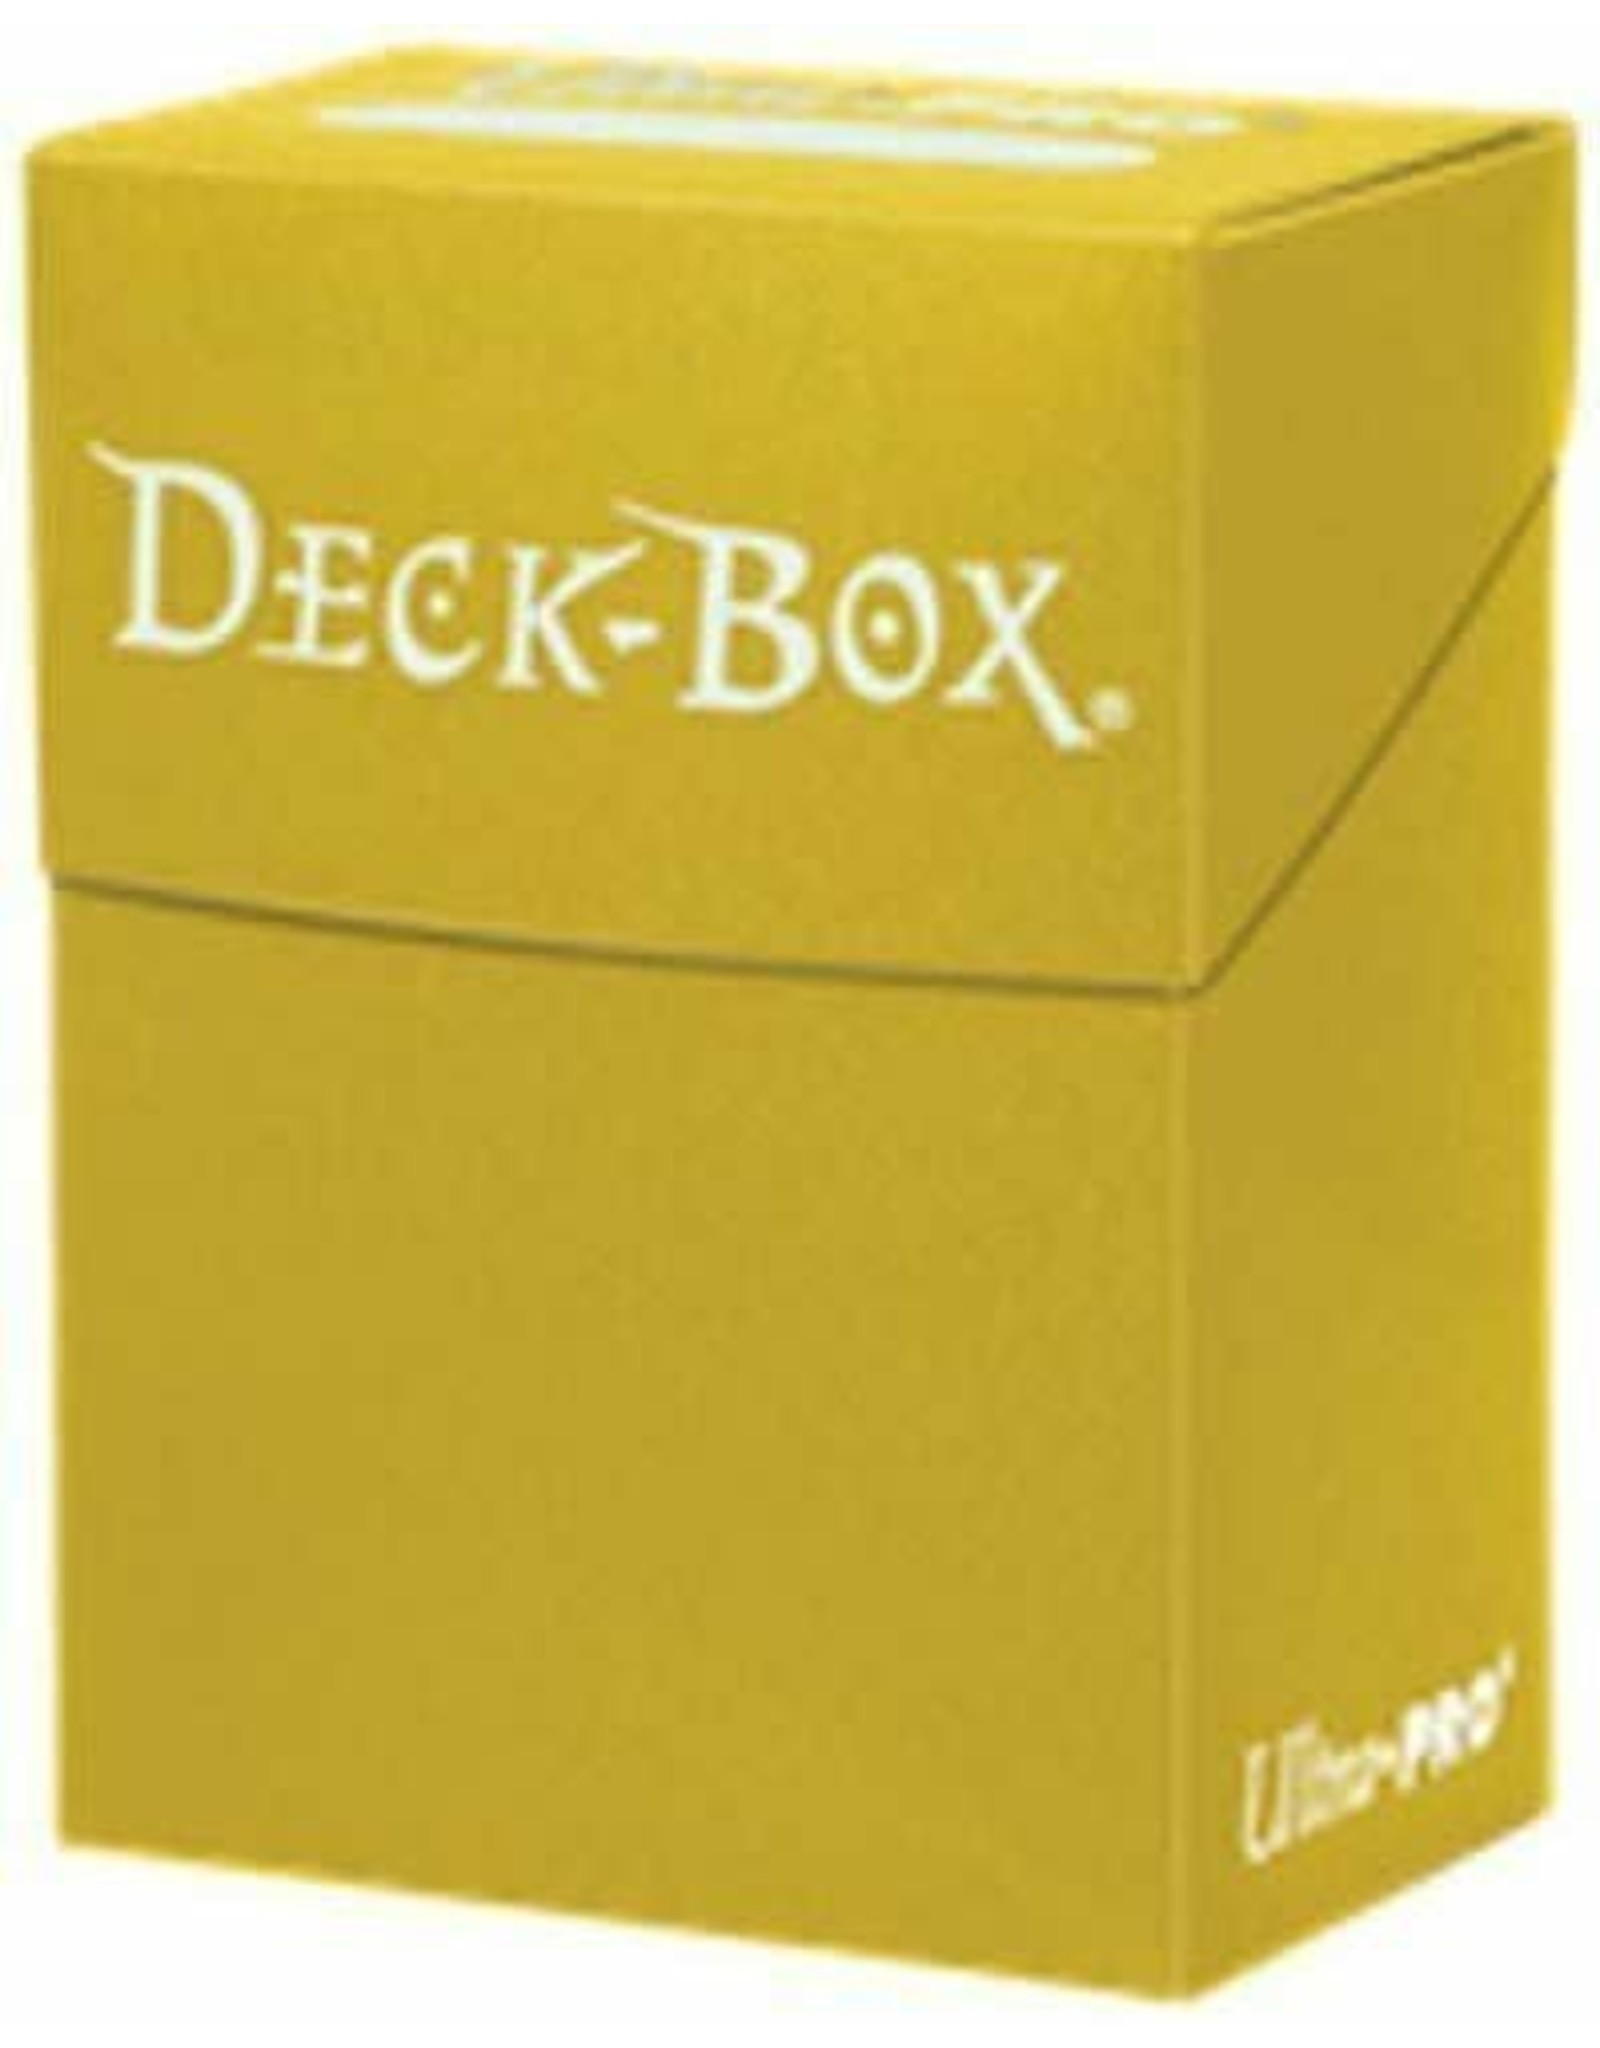 Ultra Pro Deck Box Solid Yellow